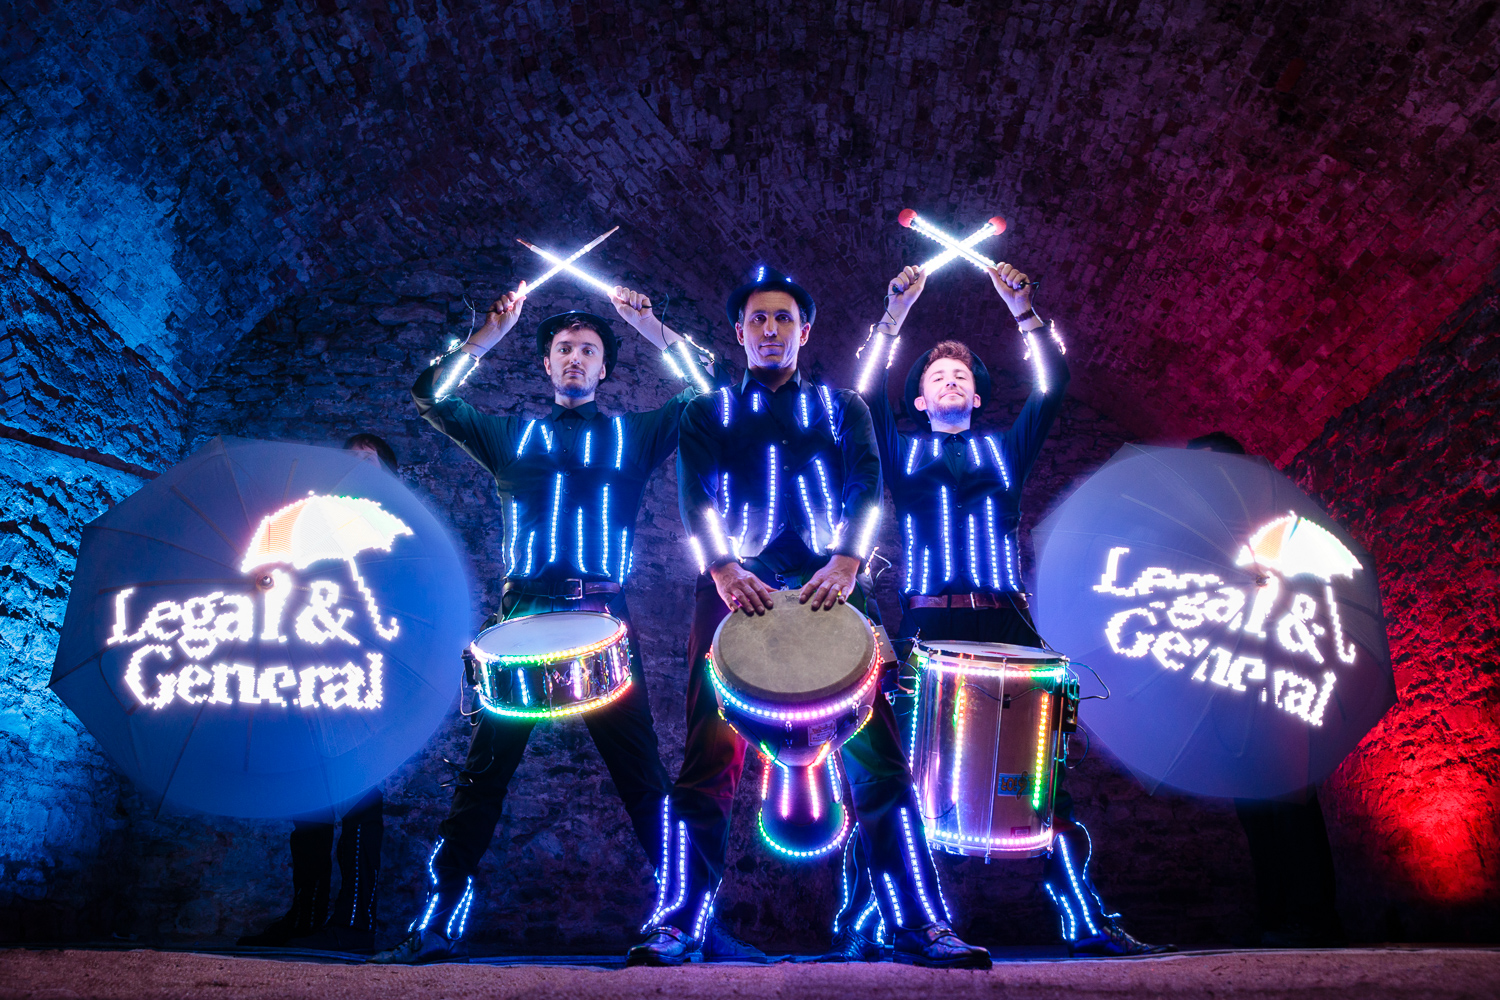 Glow Drummers and umbrellas Legal and General